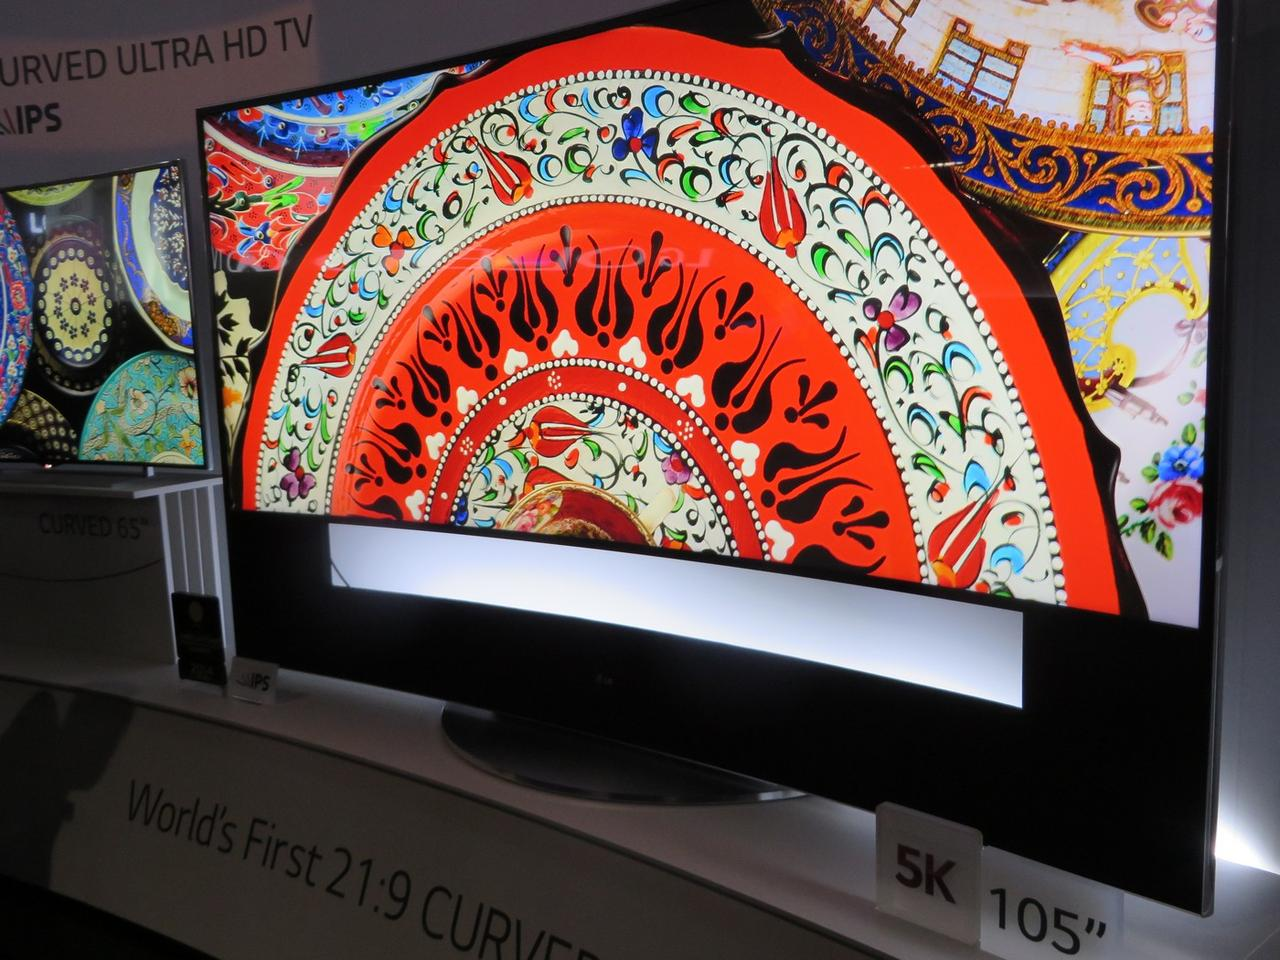 Upping the ante beyond 4K, LG's 105-inch 5K display at CES 2014